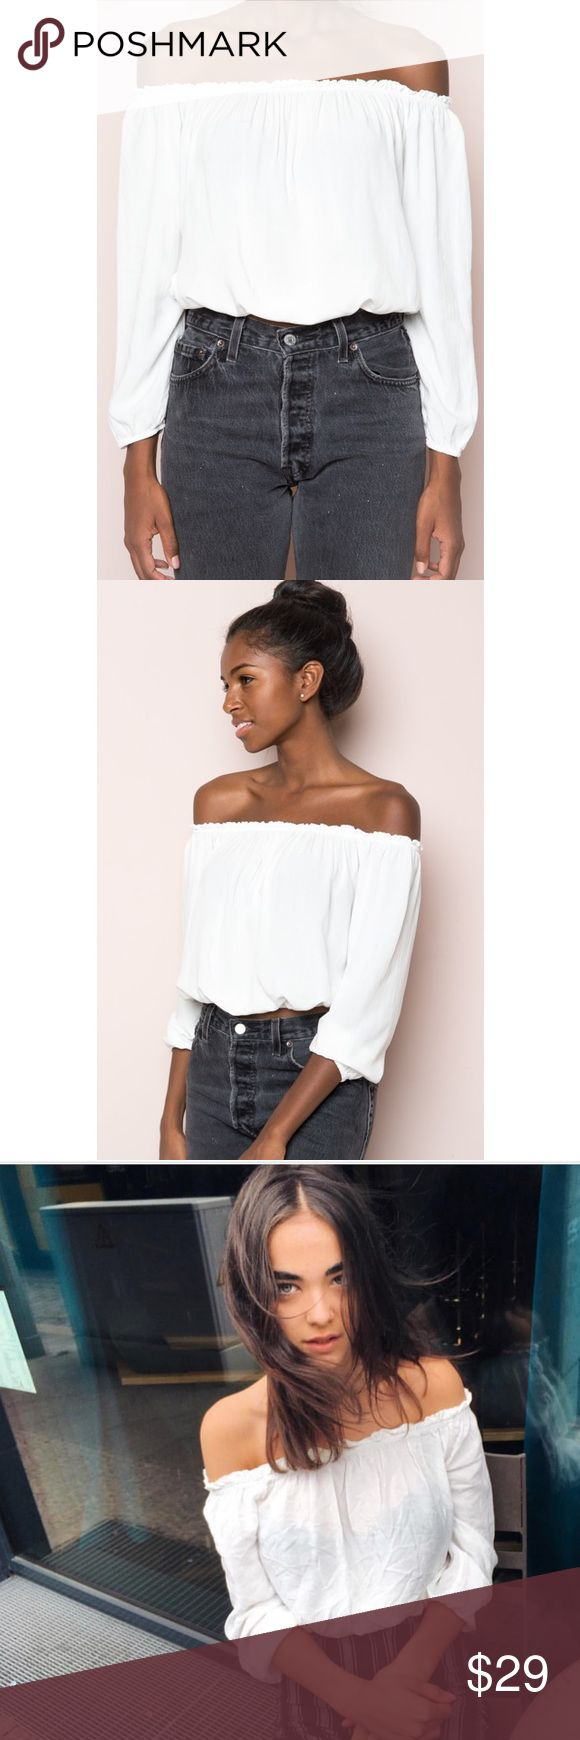 "🆕 Brandy Melville White Maura Top Soft woven cotton off-the-shoulder top in white with elasticized shoulders, sleeves and hem with ruffled trimmings and a cropped fit. Fabrics: 100% viscose Measurements: 15"" length, 15"" bust  ⭐️⭐️⭐️⭐️⭐️ Rating 💯 Shop with confidence  📦 Ship same day / next day 🆓 Brandy Melville stickers w/ purchase  🛍 Bundle & save ⛔️ trades ⛔️ lowball offers Brandy Melville Tops Blouses"